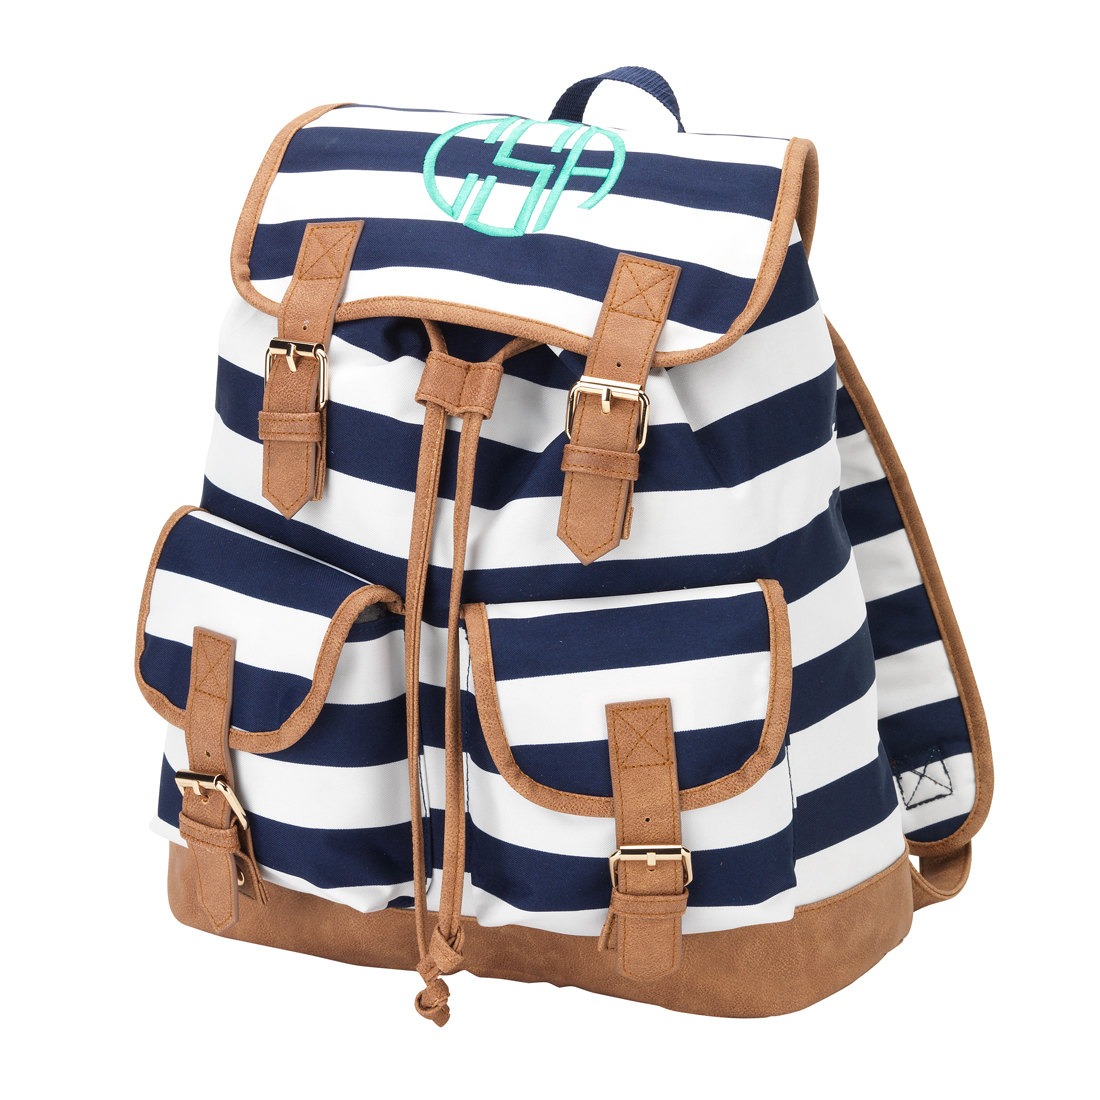 Backpacks For High School Girls Wrz6yBrZ